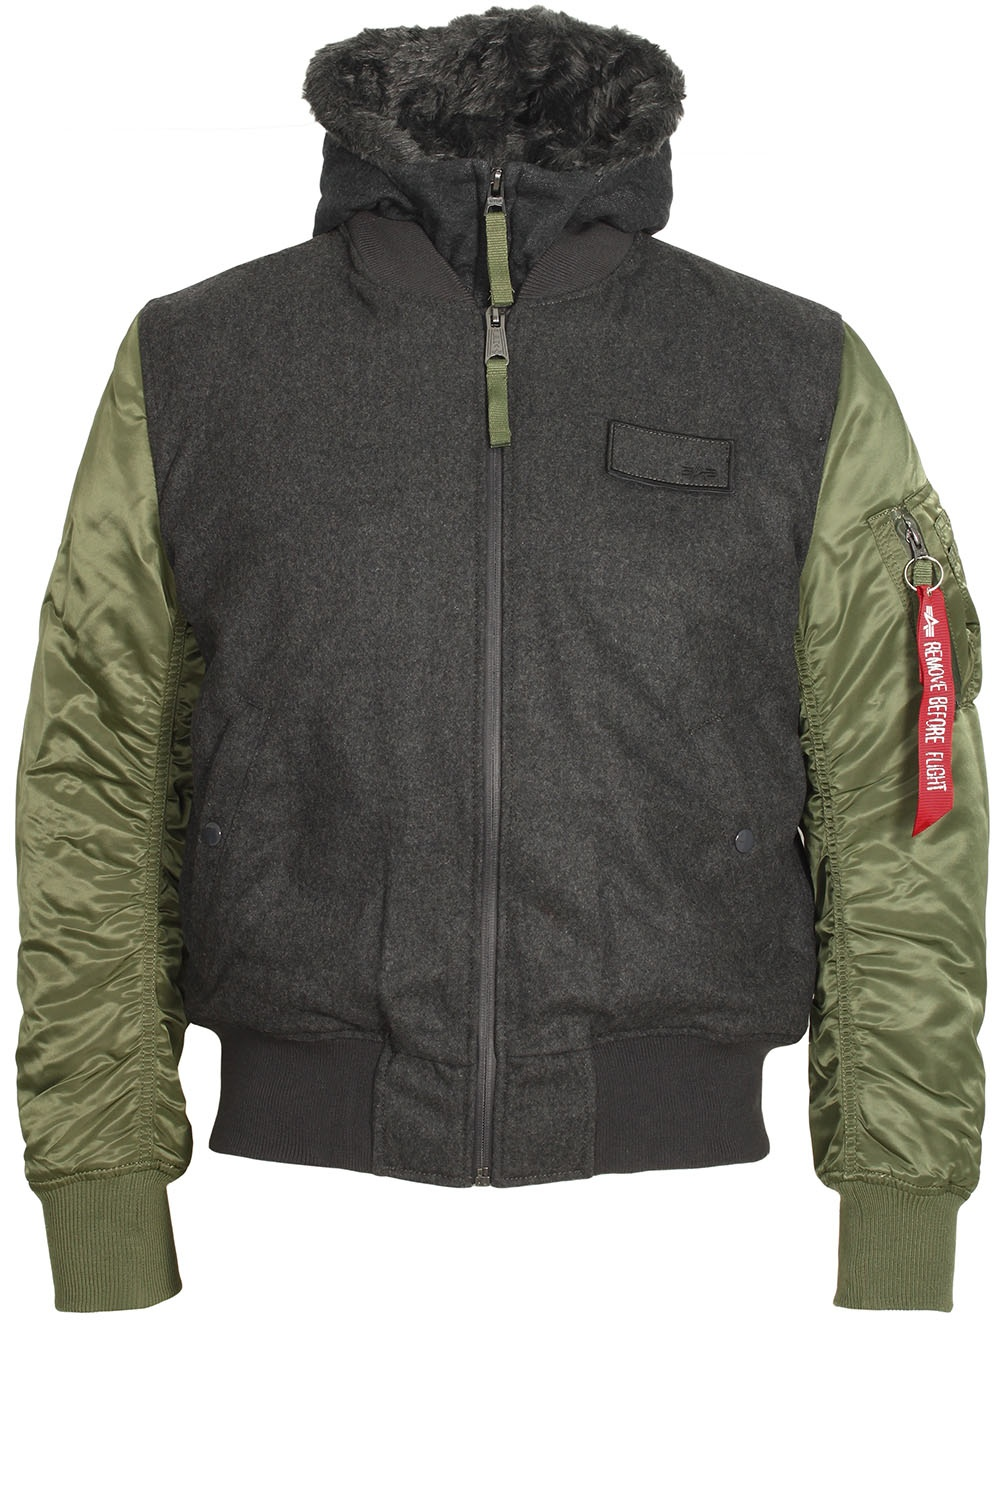 alpha industries ma1 d tec bomber jacket buy alpha flight jackets. Black Bedroom Furniture Sets. Home Design Ideas